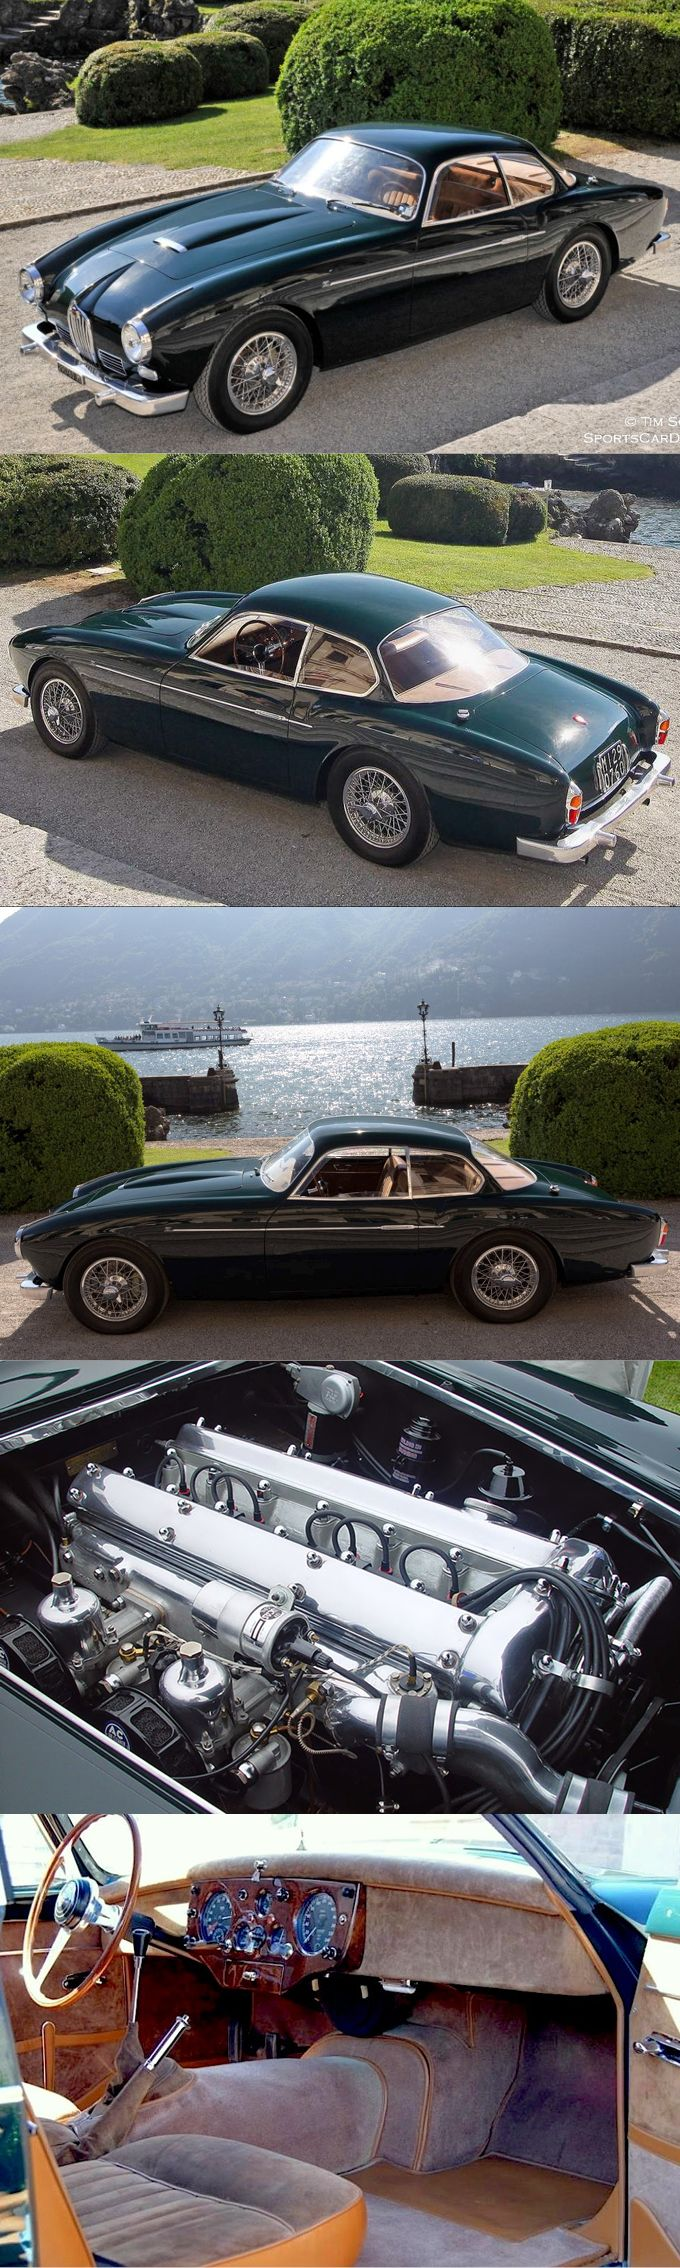 1954 Jaguar XK140 Zagato / 3.4l 190hp L6 / Italy UK / green / 17-362